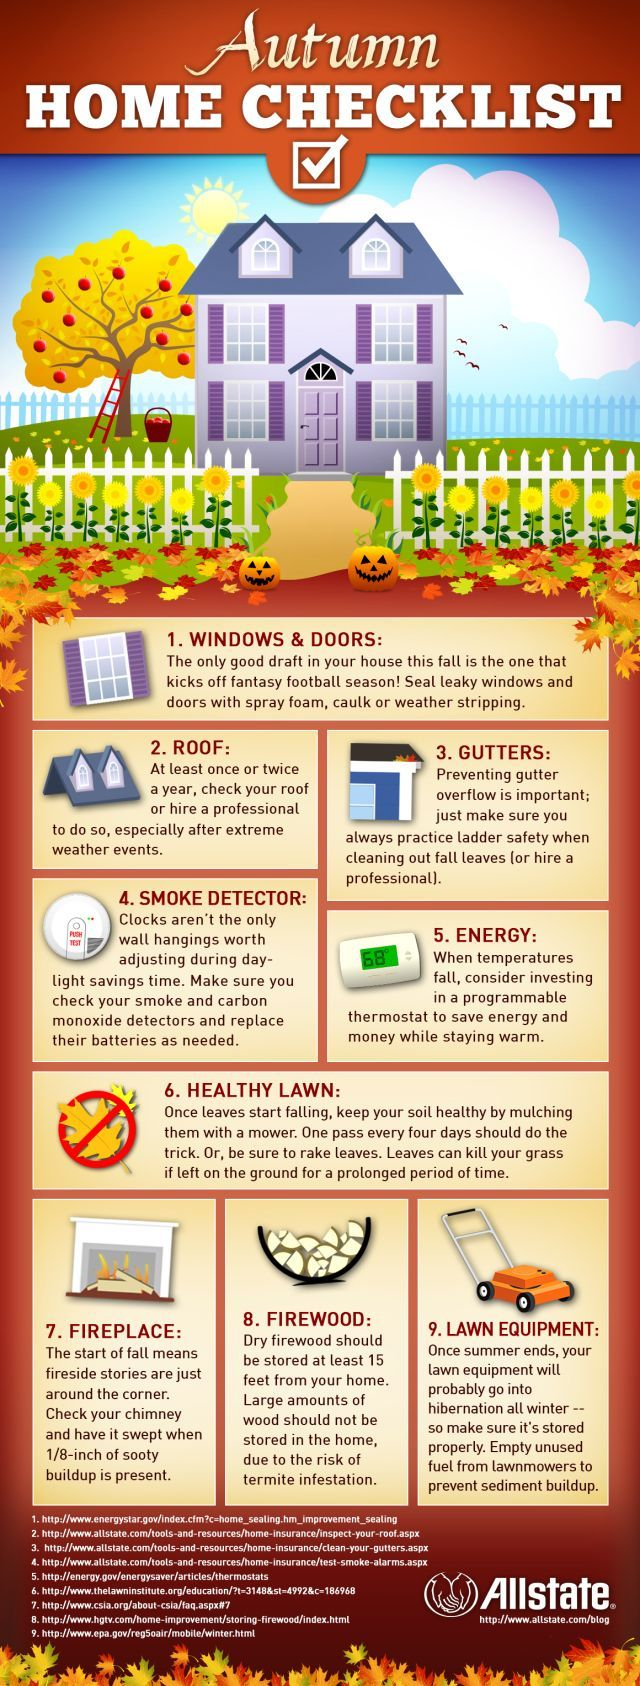 32 Best Home Tips Images On Pinterest Safety Emergency Thermostat Are Connected To At The Furnacehere Is A Typical Wiring Autumn Checklist Homemaintenance Thinking Of Buying Or Selling In Il Call Maribeth